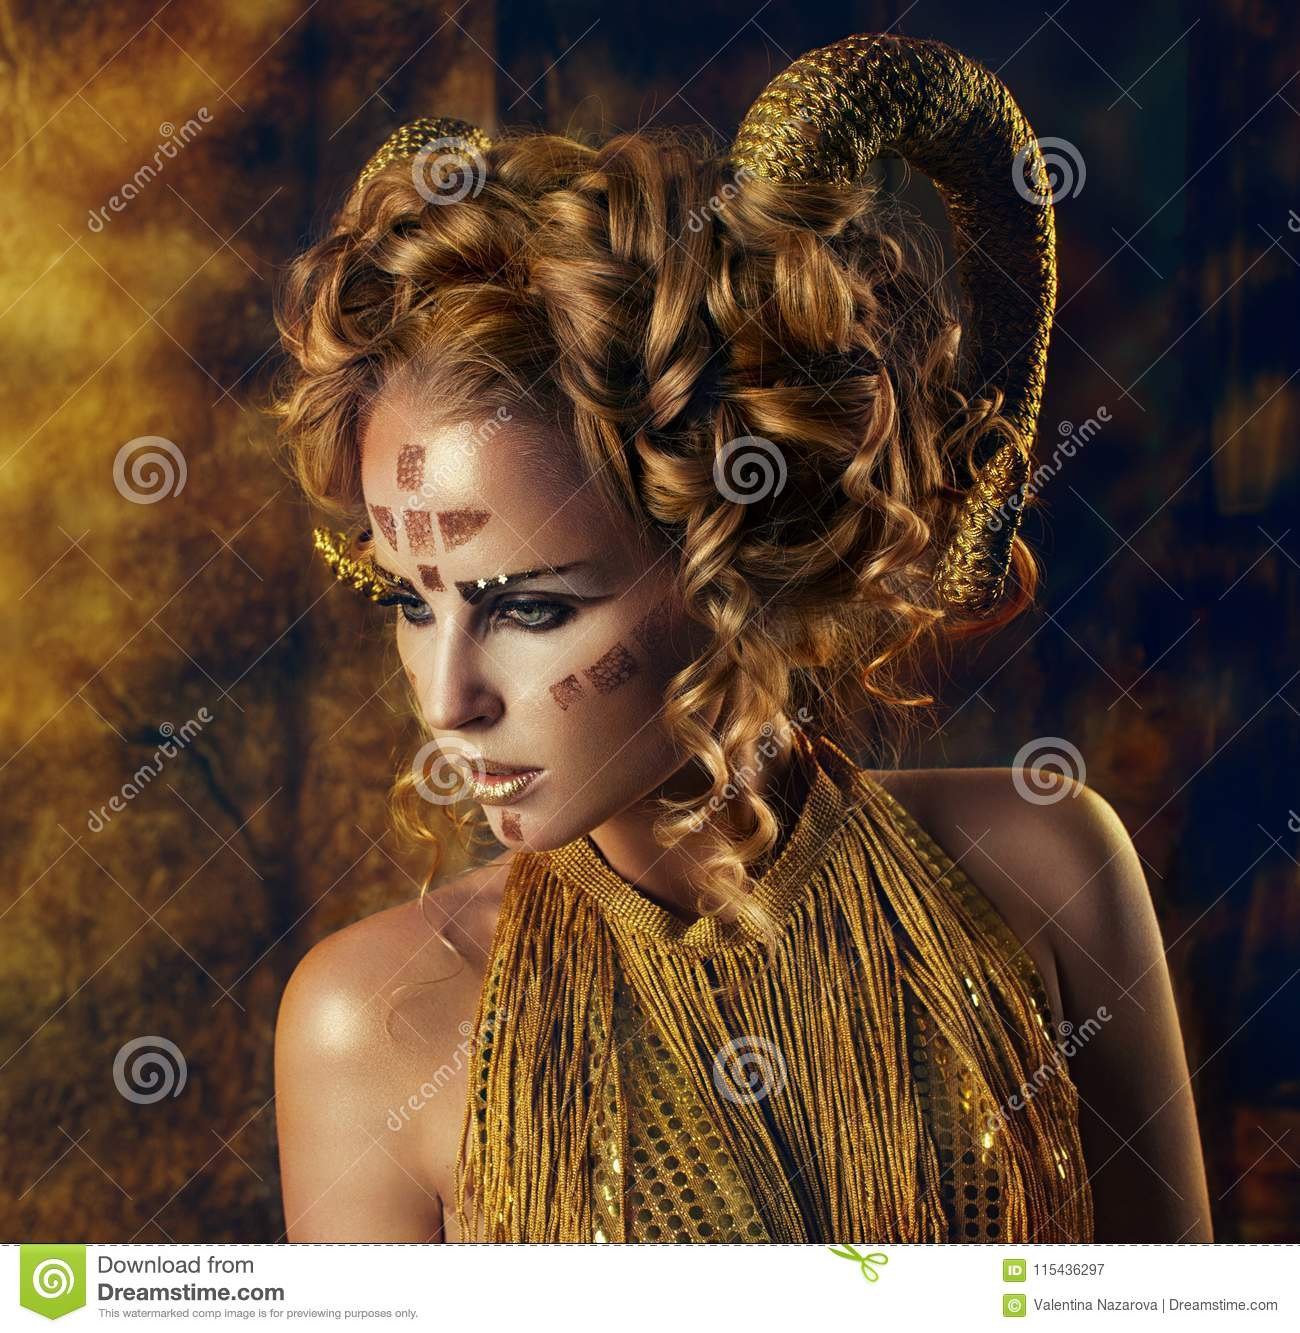 The girl with the Golden horns